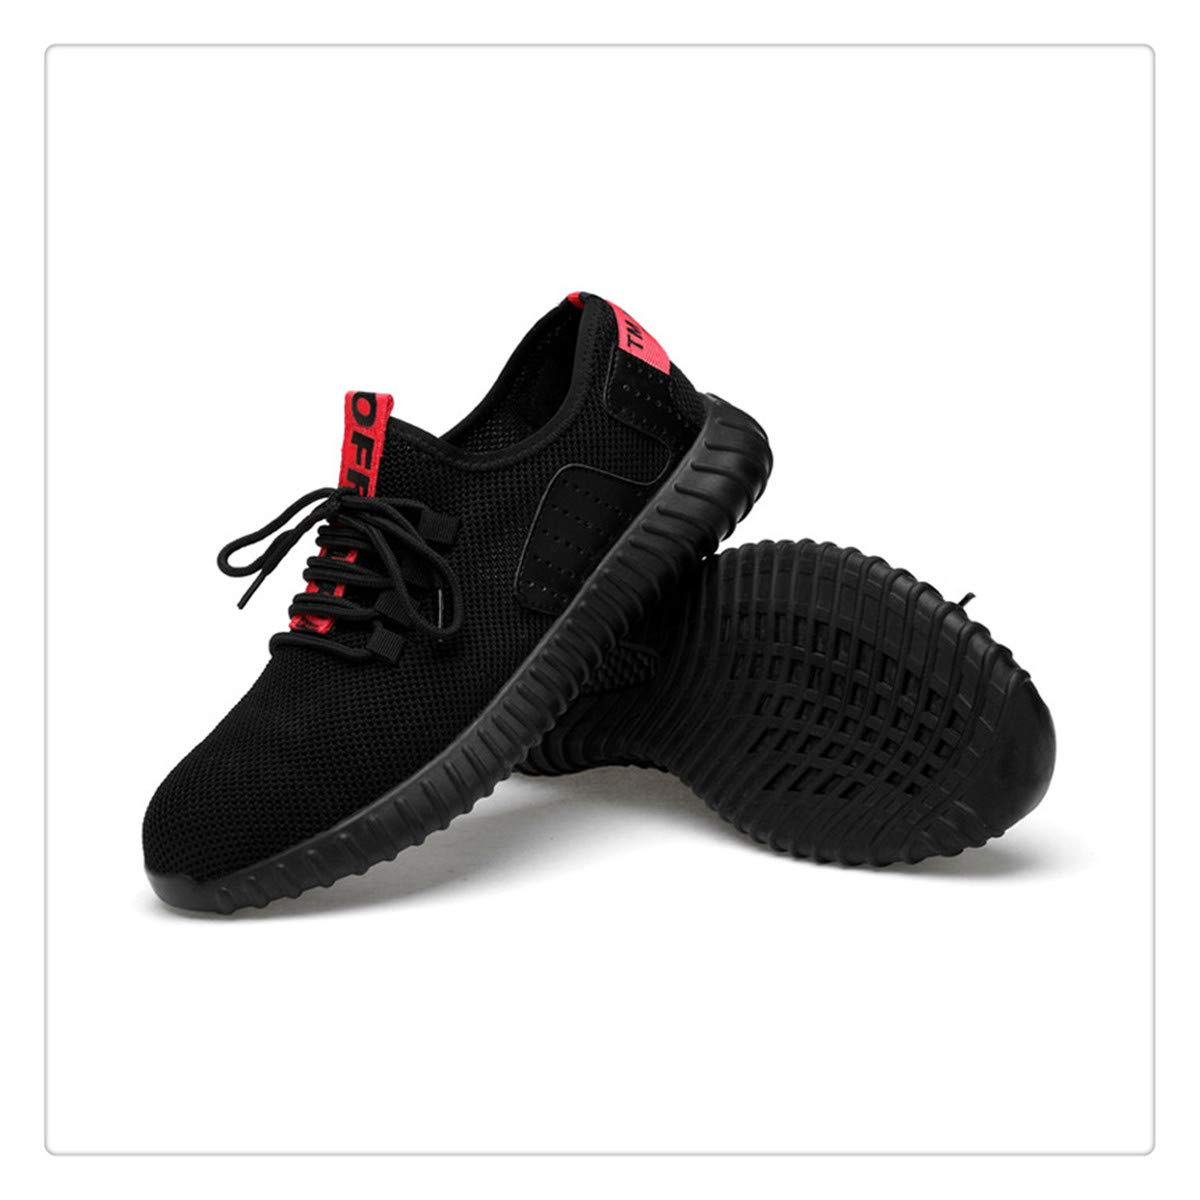 Hngchangji Safety Breathable Flying Woven Anti-Smashing Steel Toe caps Anti-Piercing Shoes